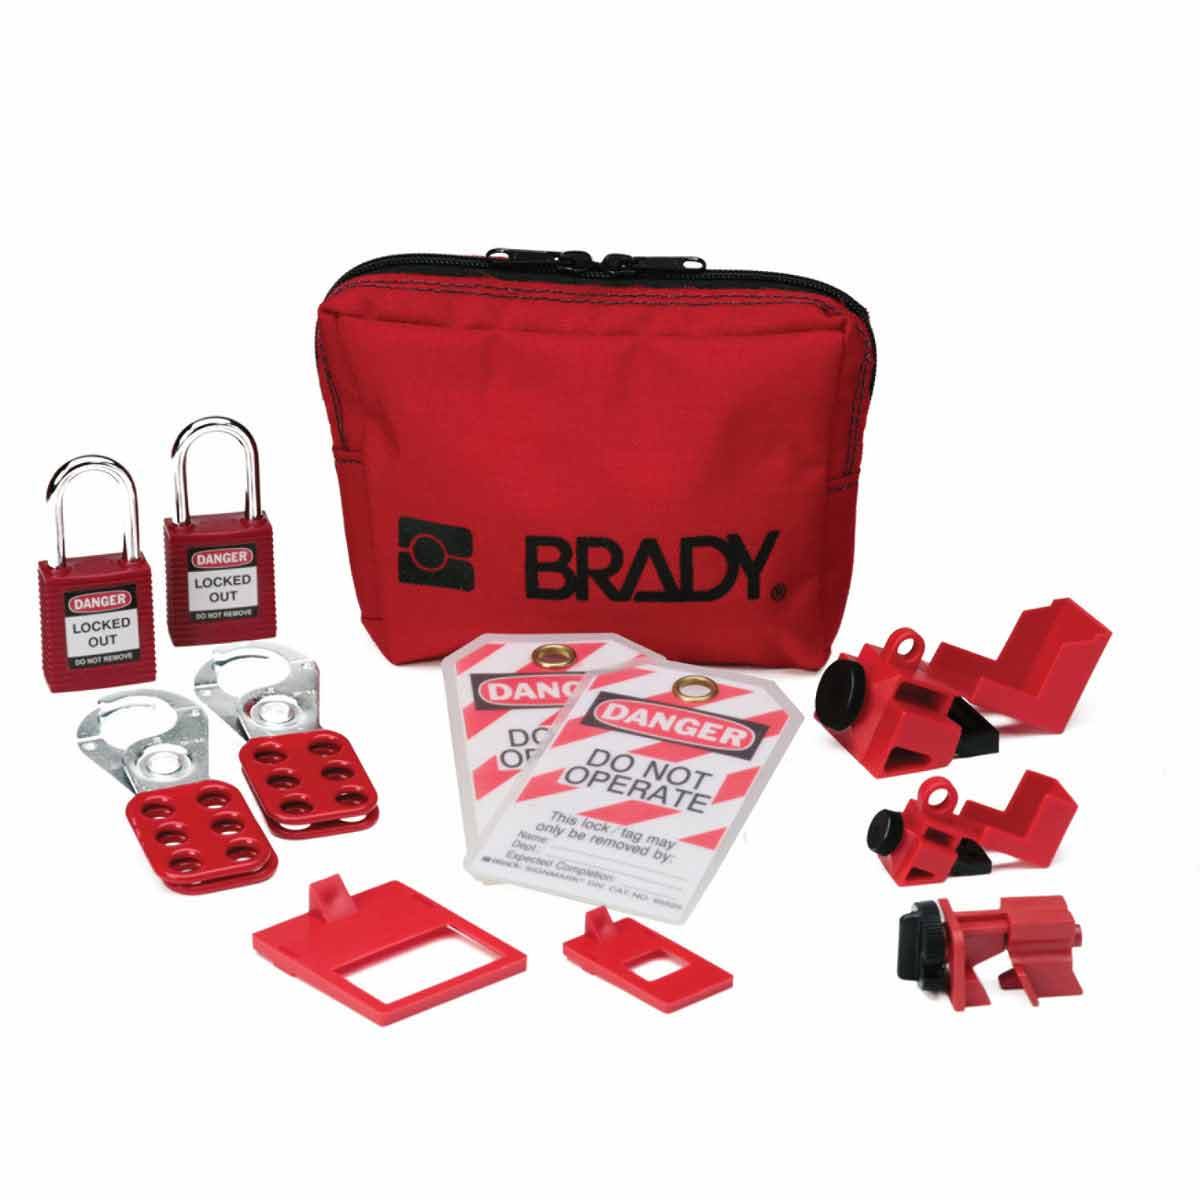 Brady® 105967 Electrical Risk Portable Lockout Kit, For Use With Circuit Breaker, 2 Padlocks, Nylon, Black on Red